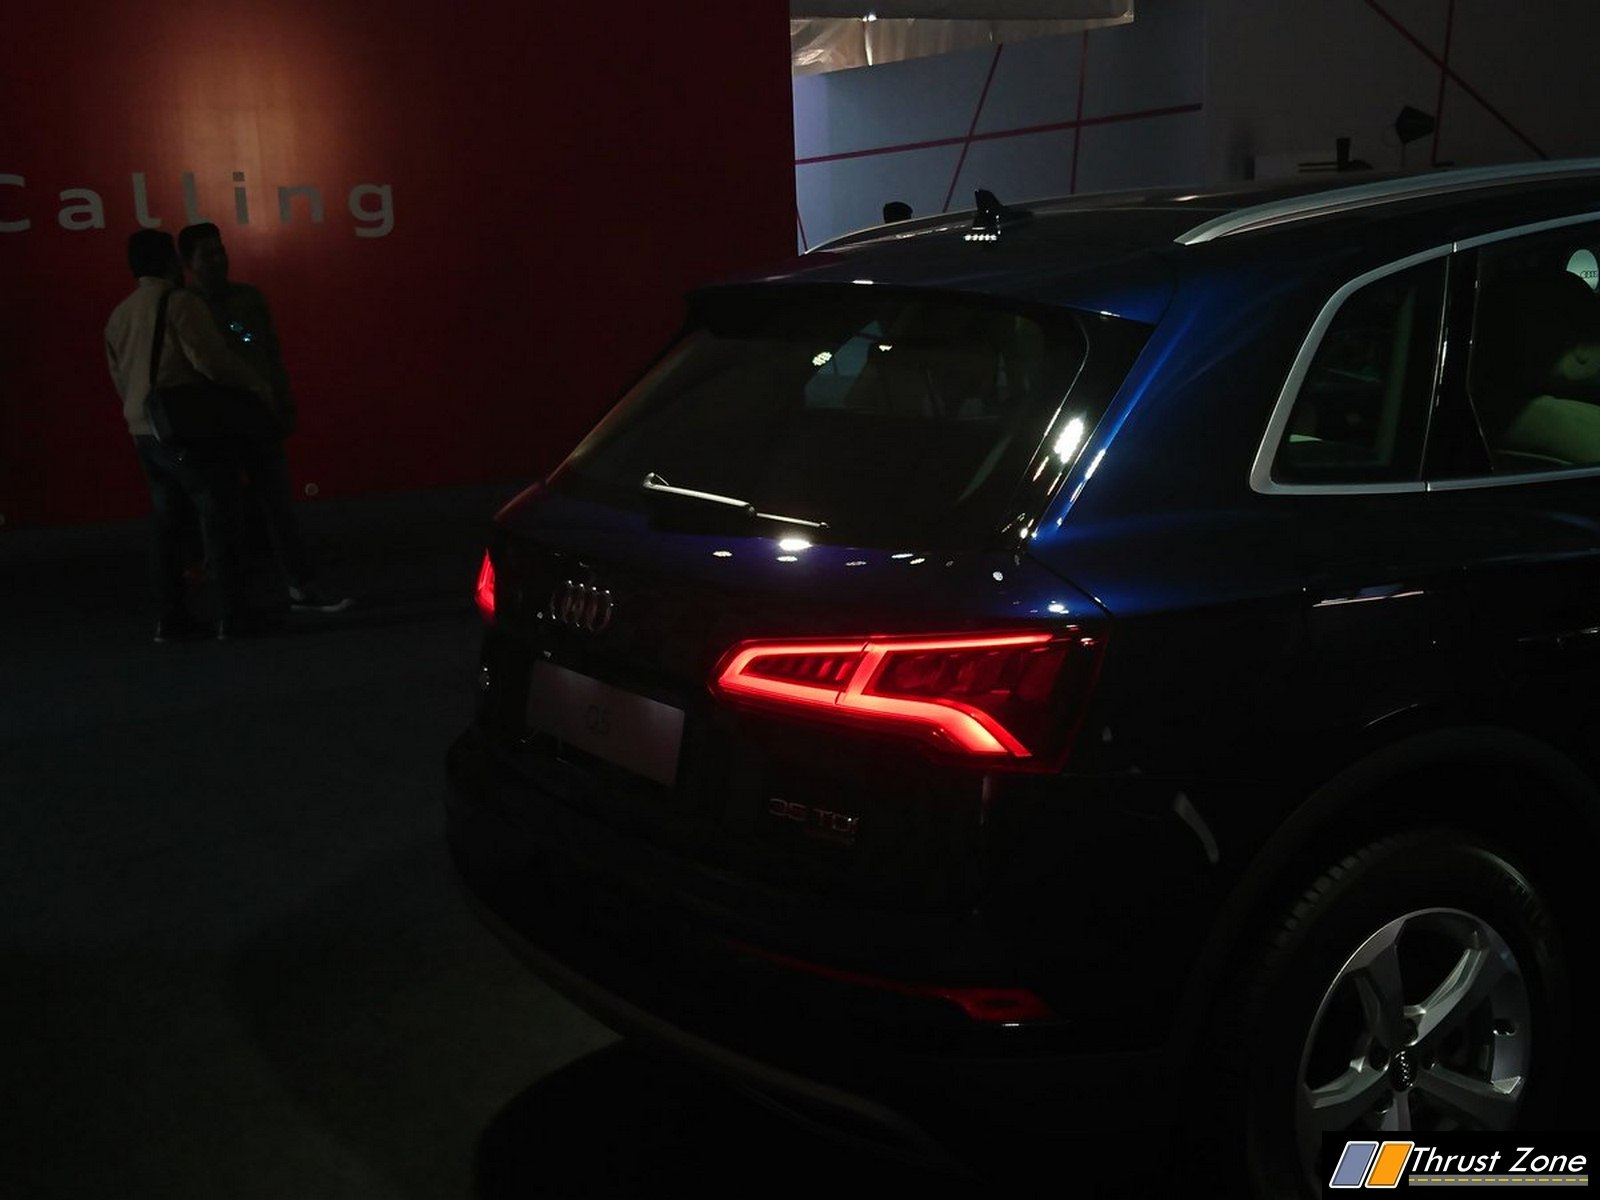 https://www.thrustzone.com/wp-content/uploads/2016/09/Second-Generation-2017-Audi-Q5-Launched-in-India-3.jpg